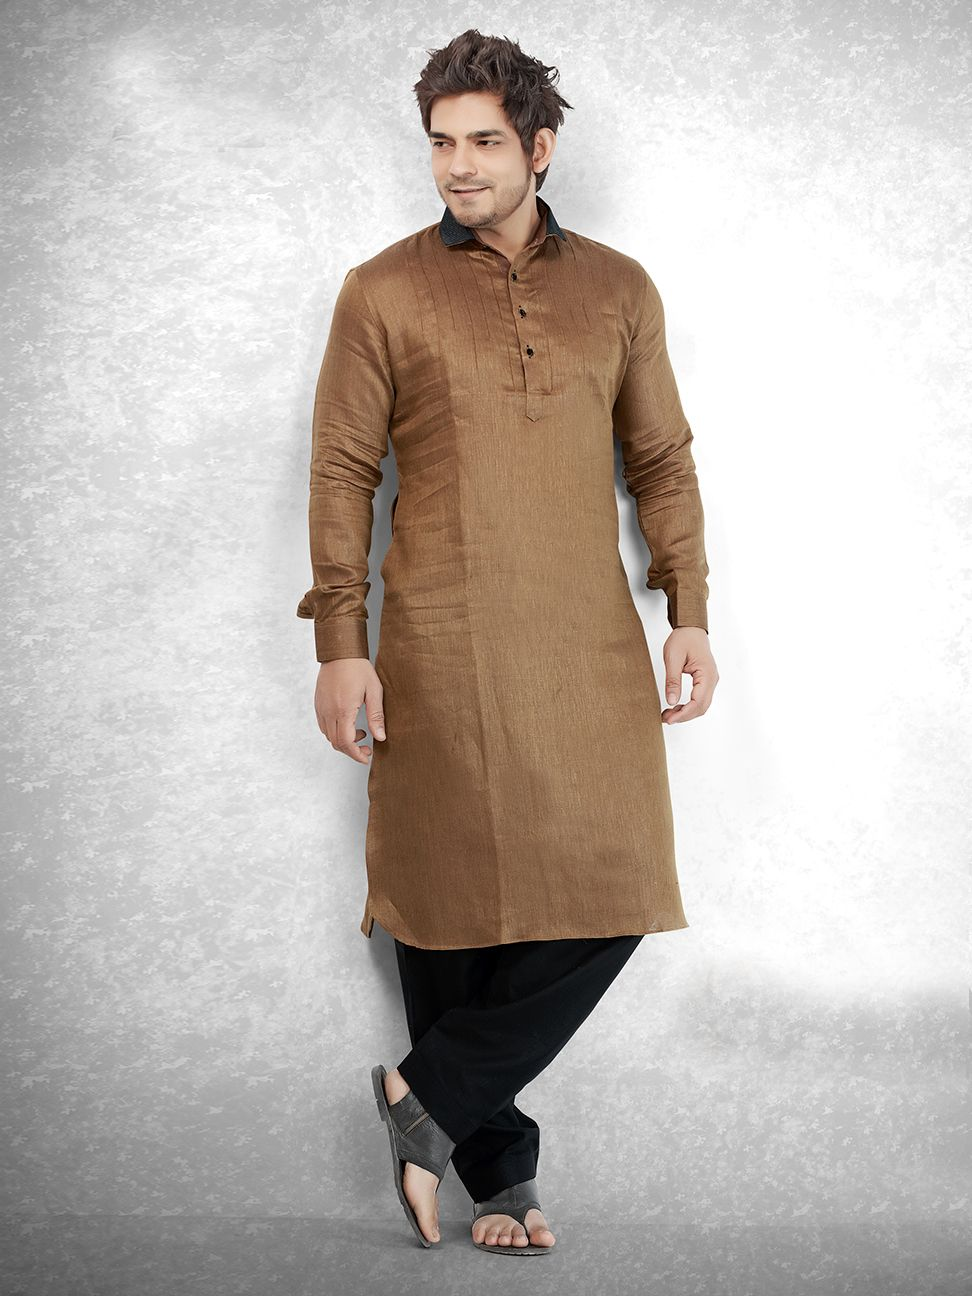 48027335455 Hover to zoom Brown Cotton Festive Men Pathani Suit